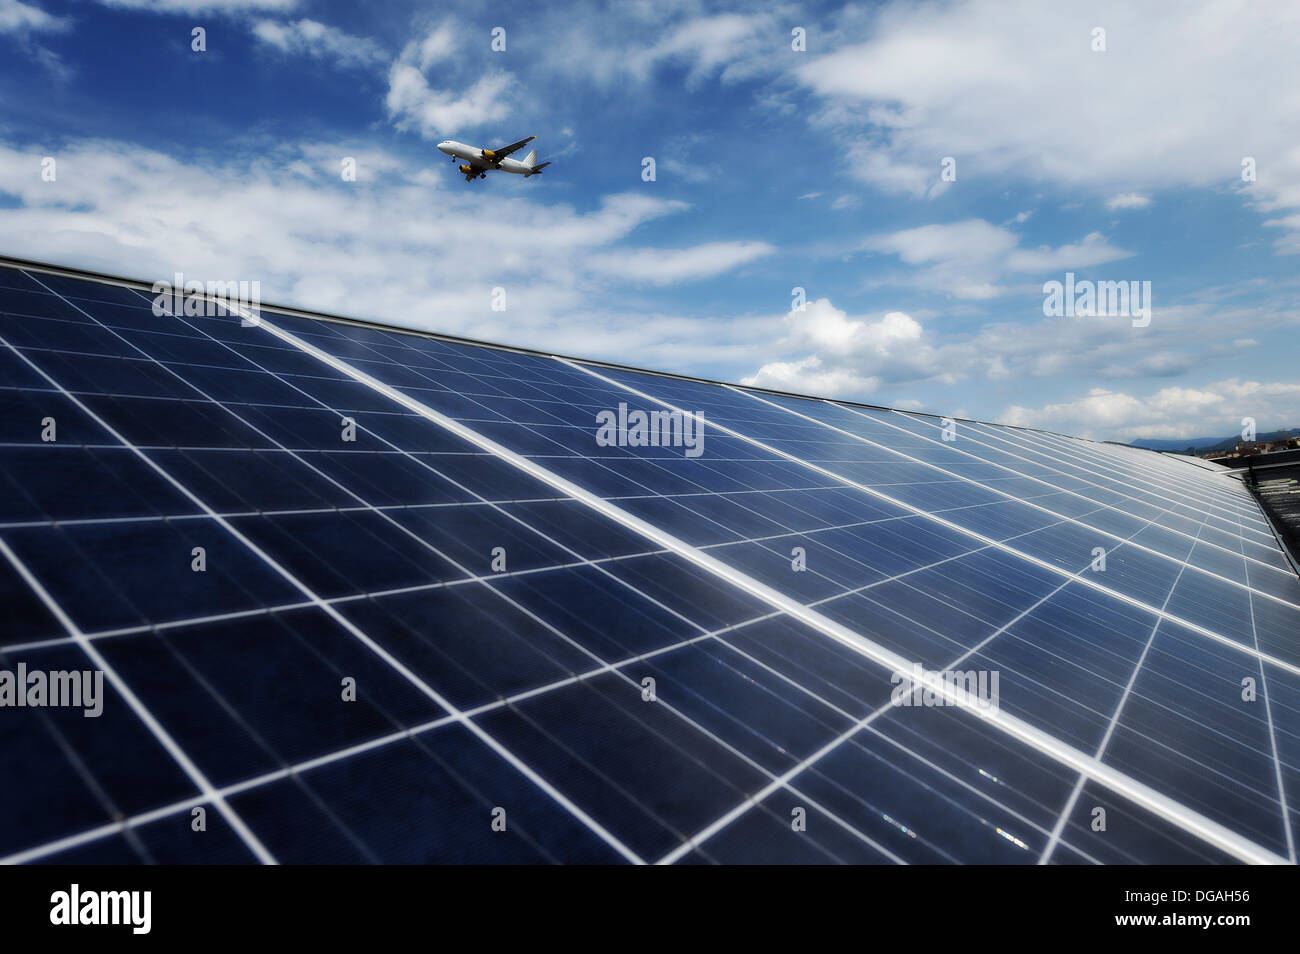 Solar panels on the roof of a modern office building with a plane on final approach to the airport - Stock Image